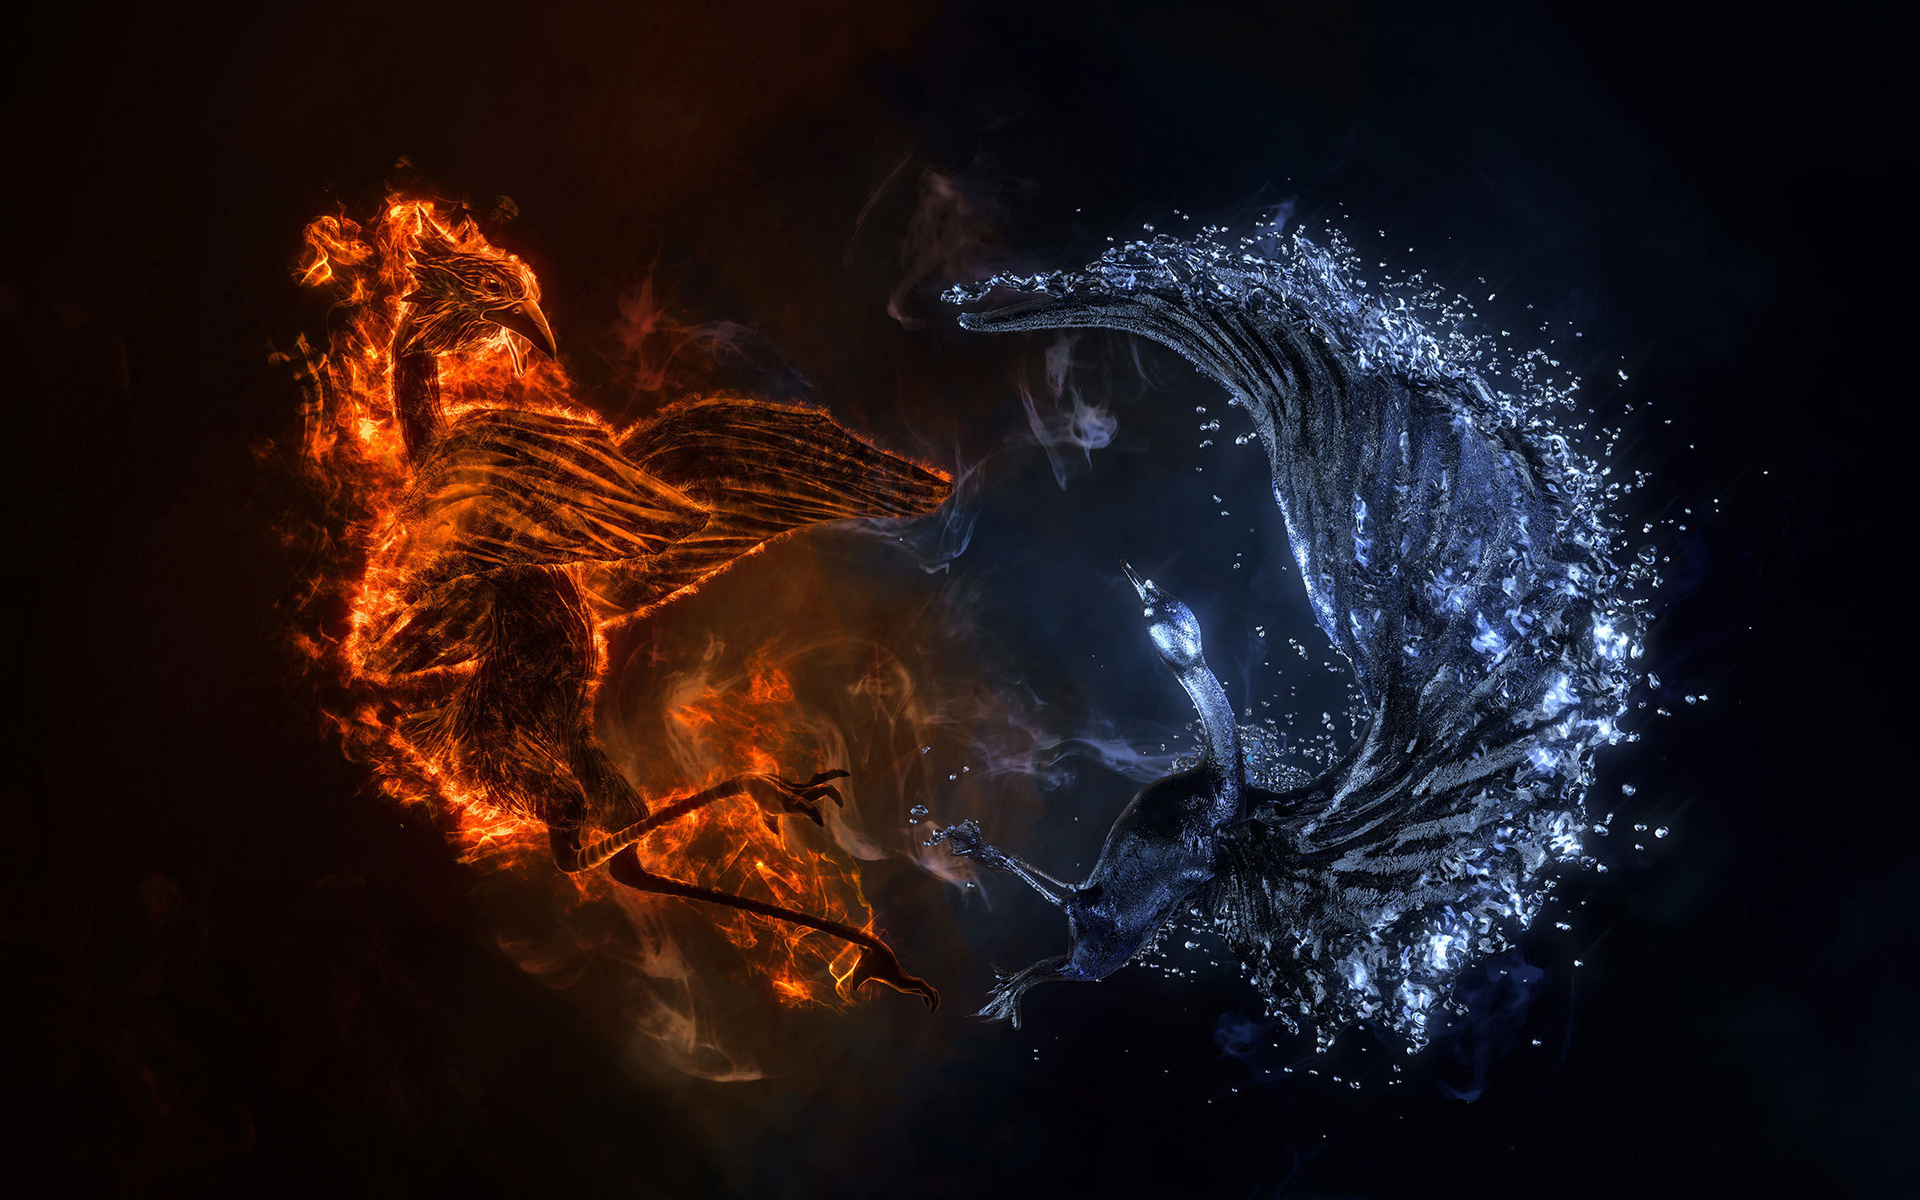 Fire Phoenix vs Ice Phoenix Desktop Wallpaper 1920x1200